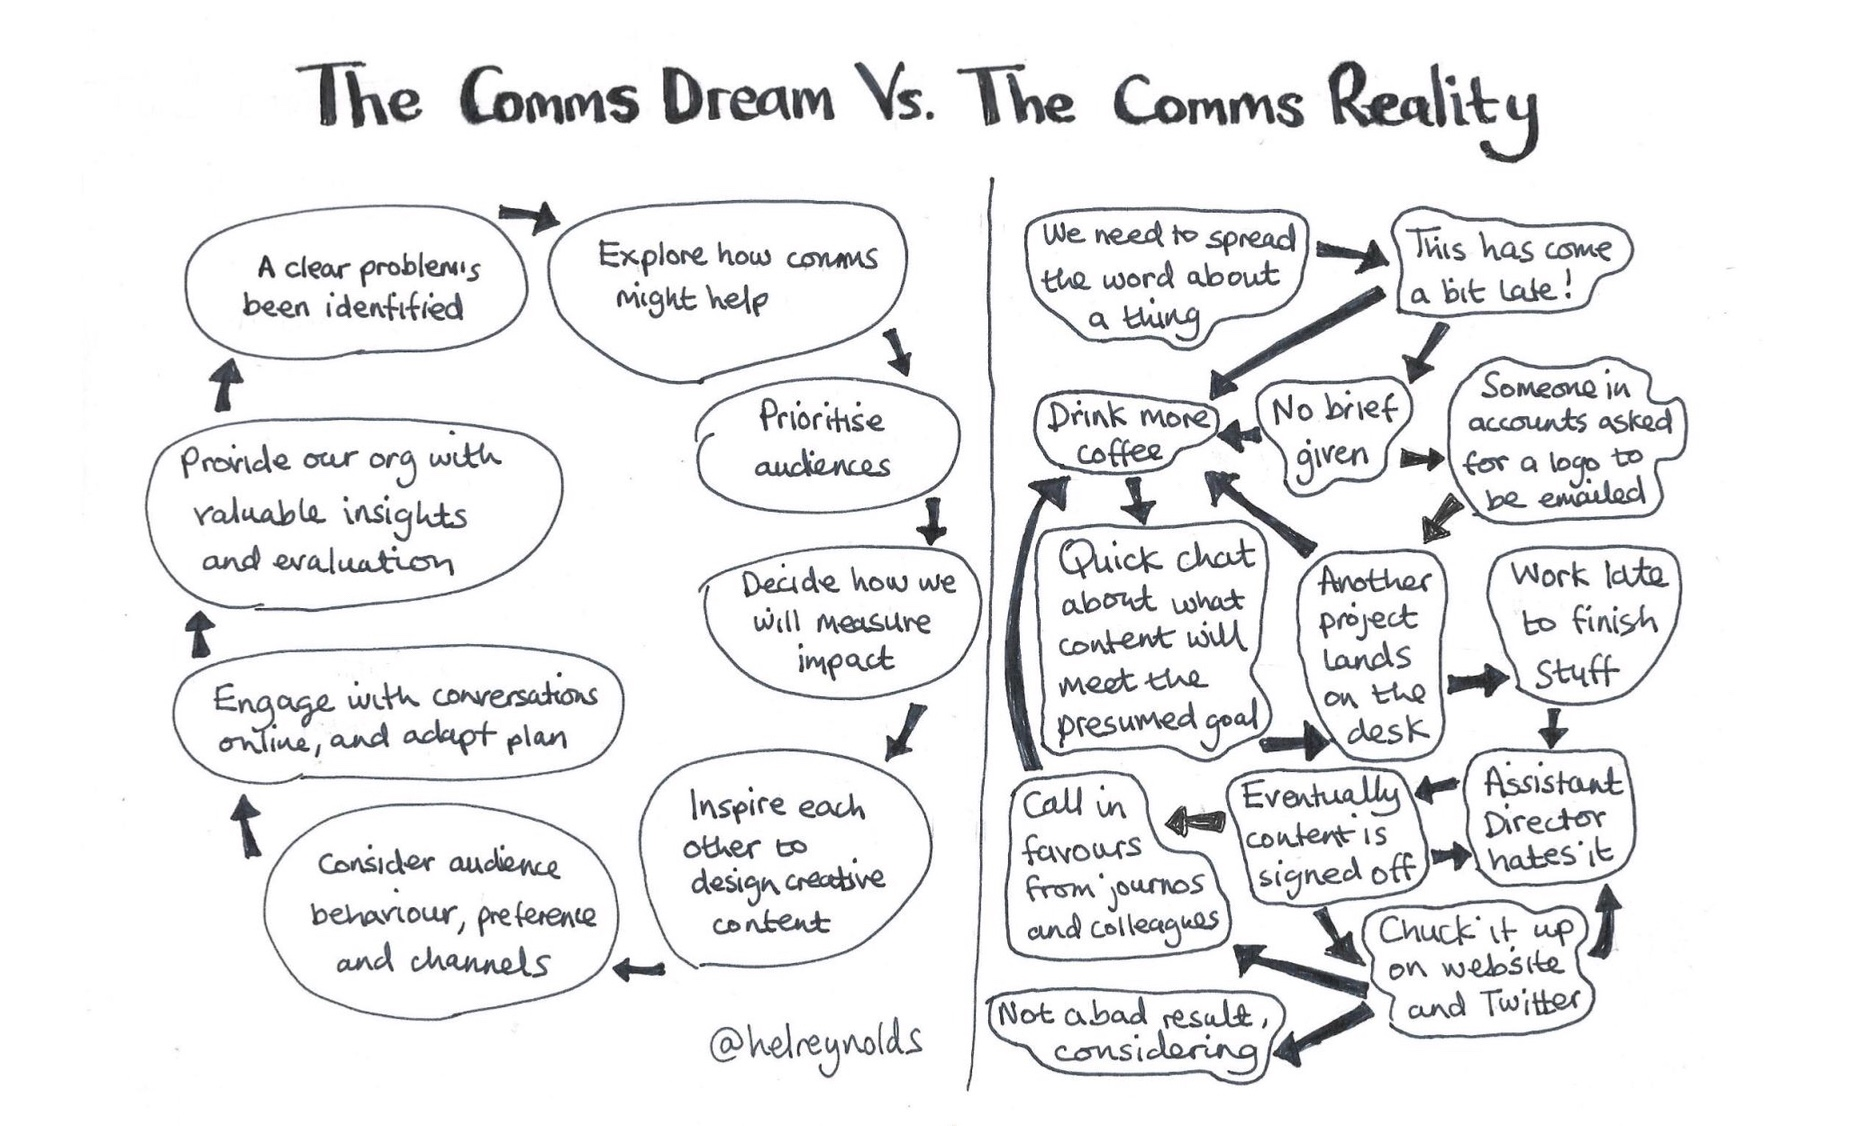 the comms dream Vs the reality